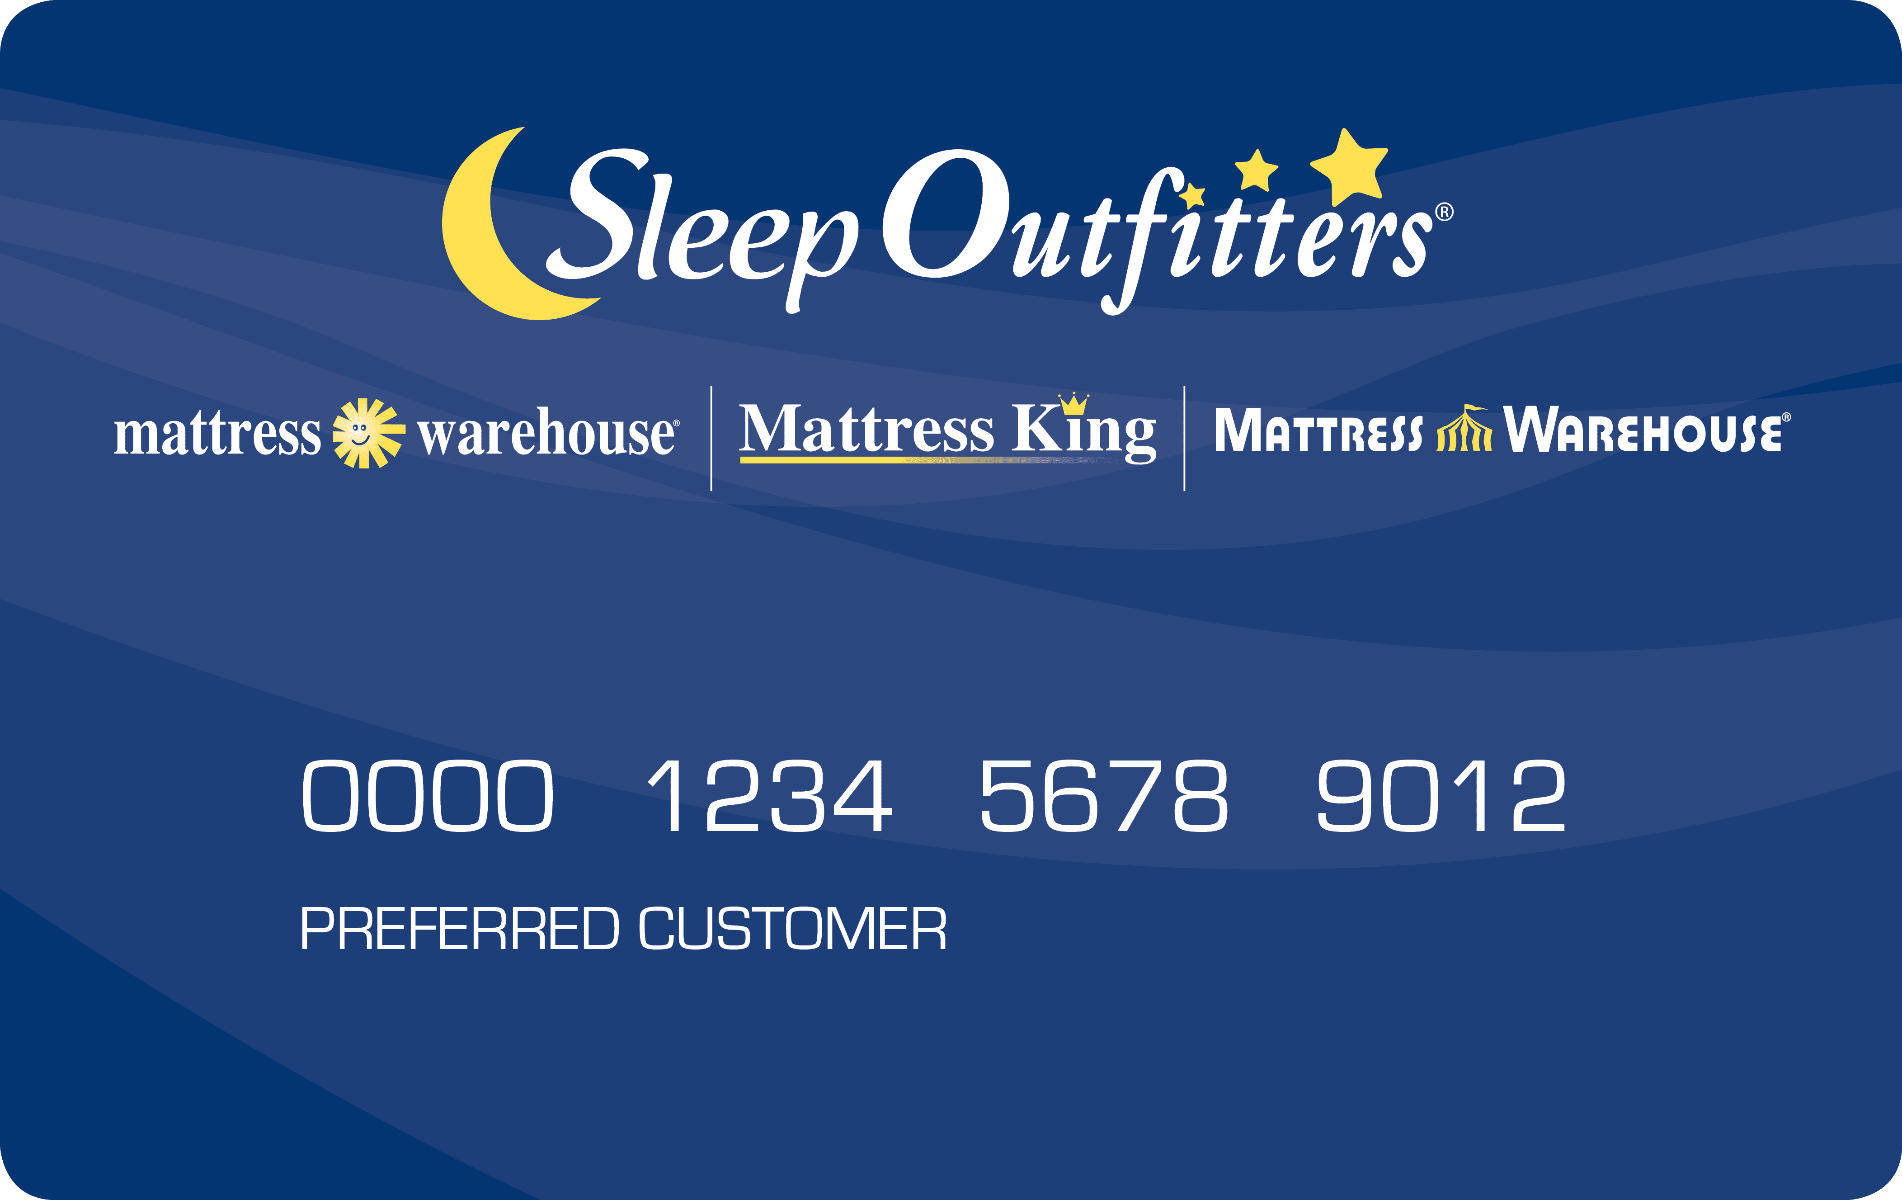 Sleep Outfitters Credit Card